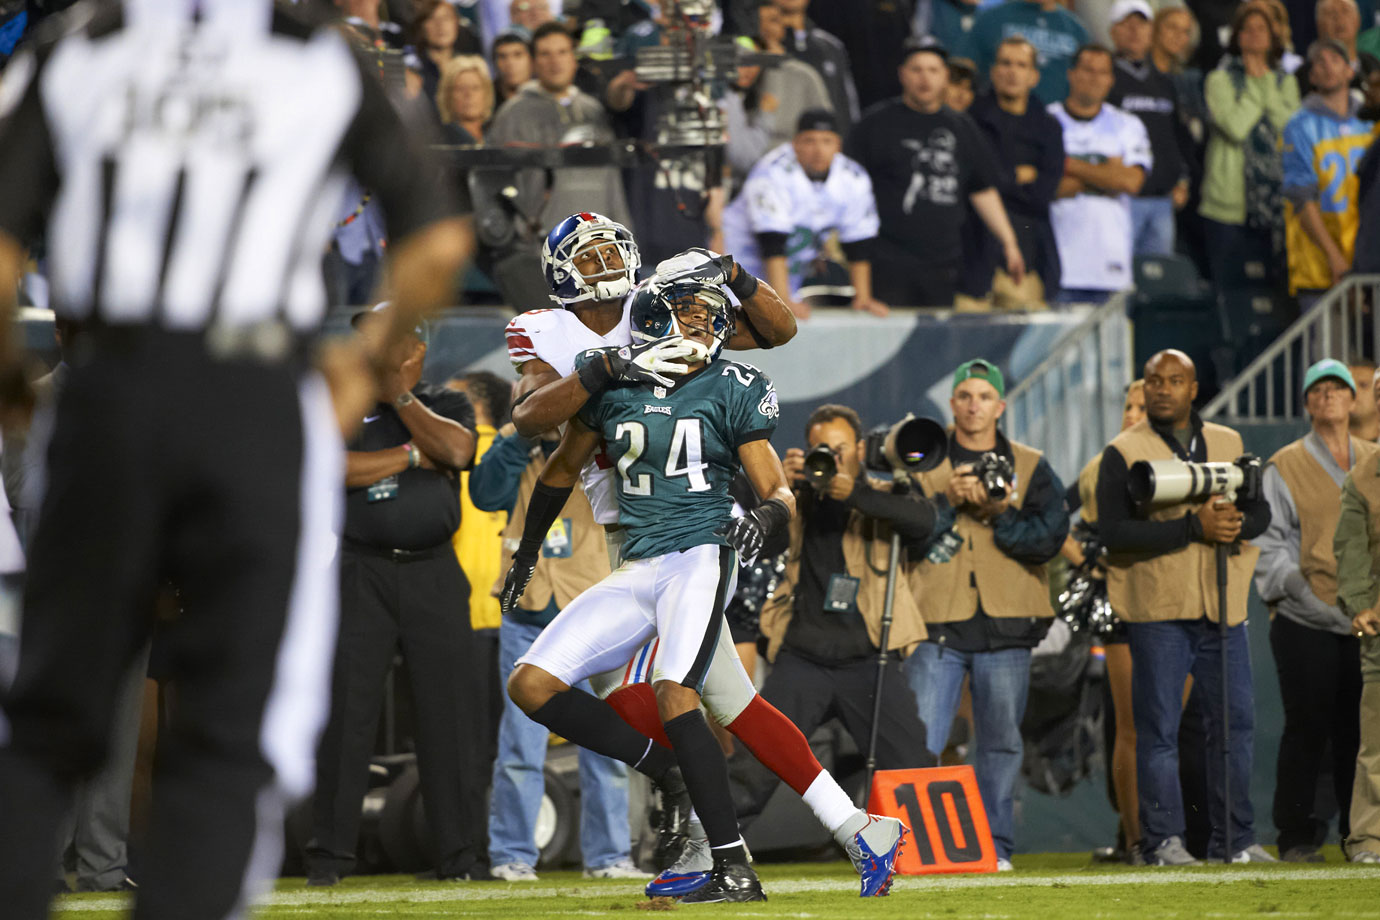 When the Eagles signed All-Pro cornerback Nnamdi Asomugha to a five-year, $60 million contract in 2011, Philadelphia looked like a Super Bowl contender. Asomugha had played eight years in Oakland, where he was a three-time Pro Bowler and two-time All-Pro. Instead, Asomugha did not live up to the hype, and the Eagles failed to make the playoffs in either of his two seasons in Philadelphia. The Eagles released Asomugha during the 2013 offseason.